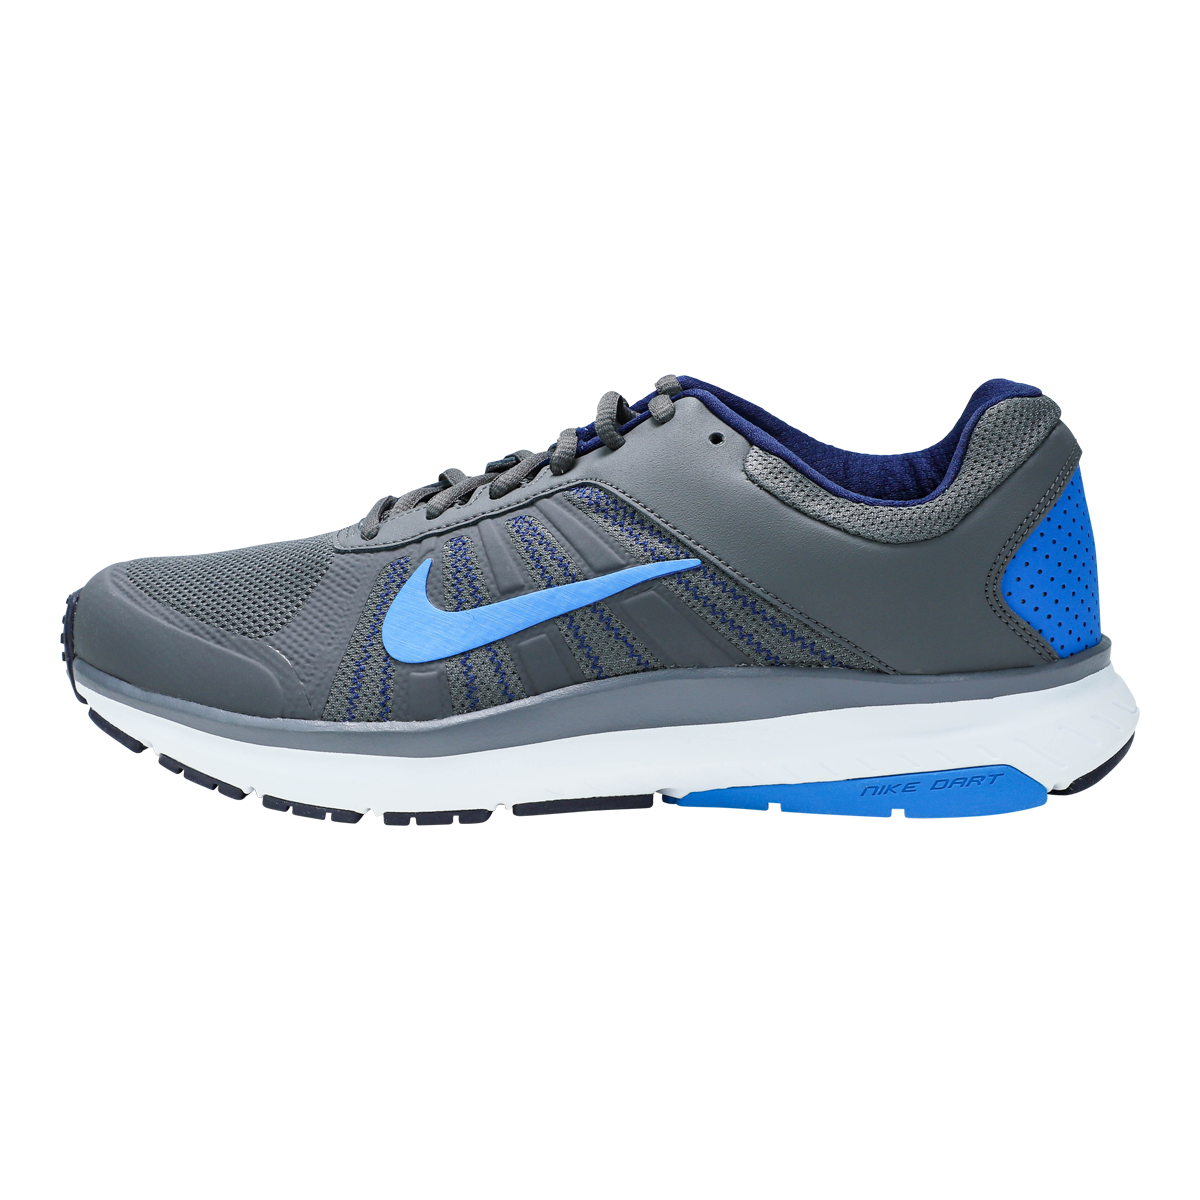 Nike-Men-039-s-Dart-12-MSL-Running-Shoes thumbnail 27